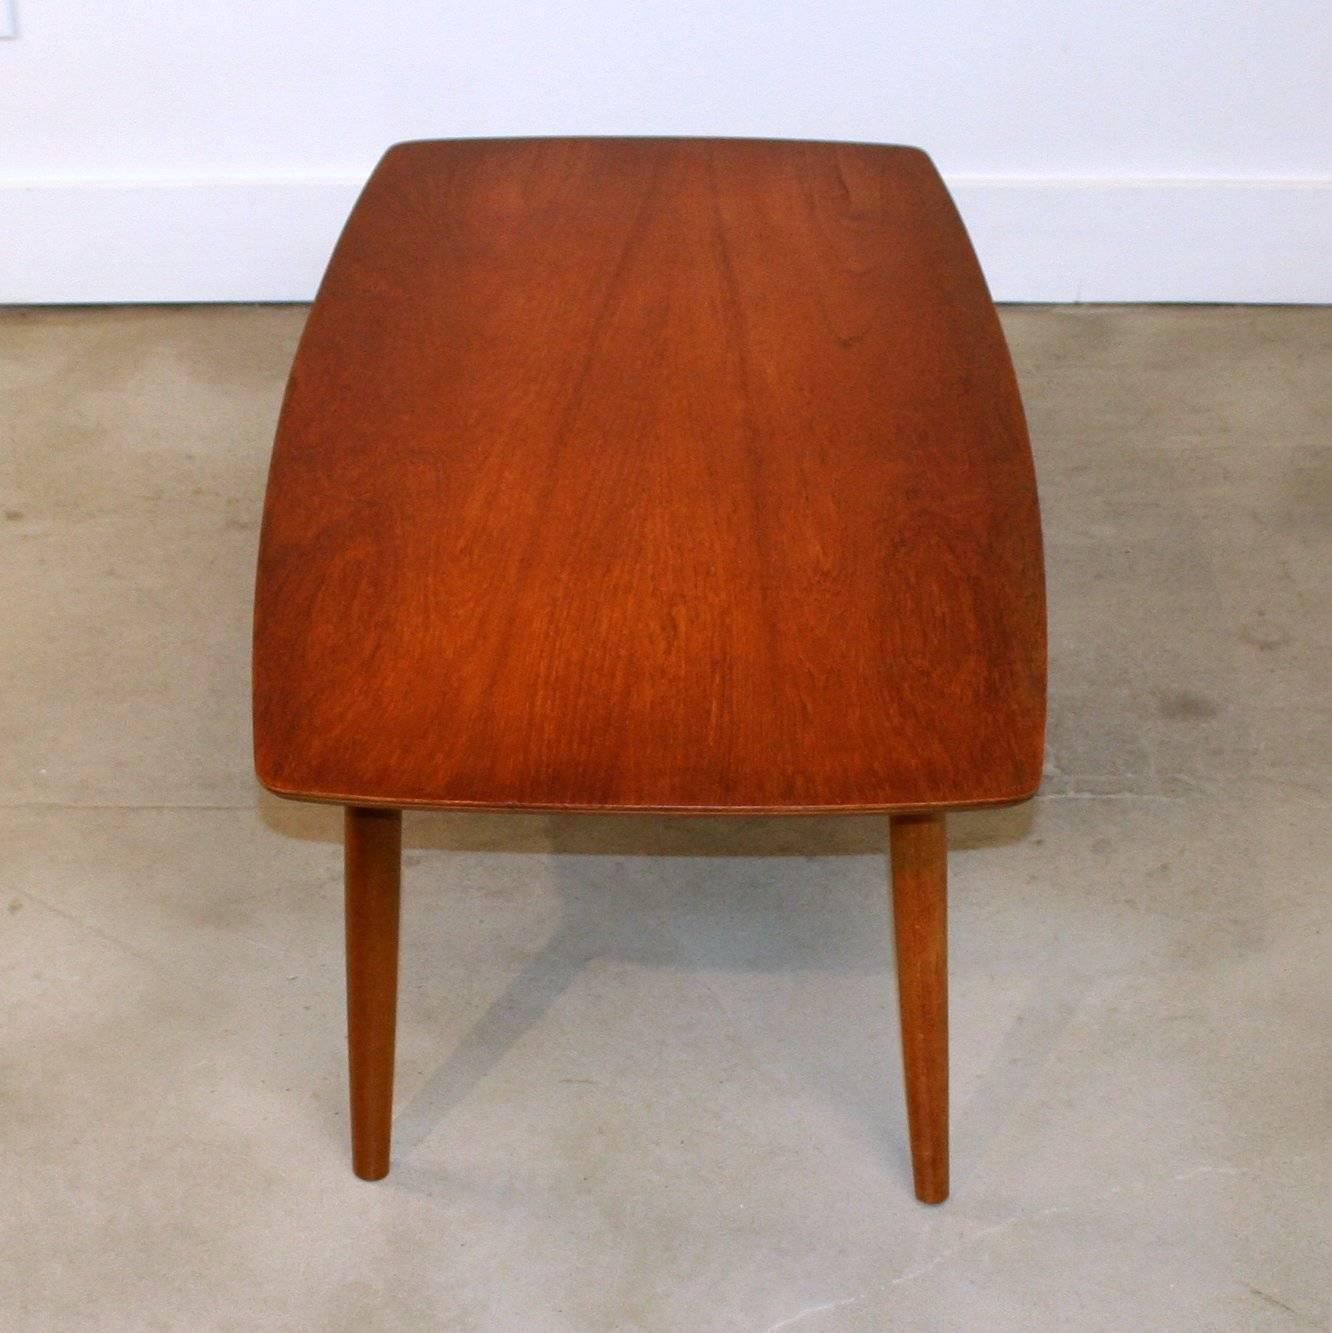 Vintage Danish Small Scale Teak Coffee Table At 1stdibs